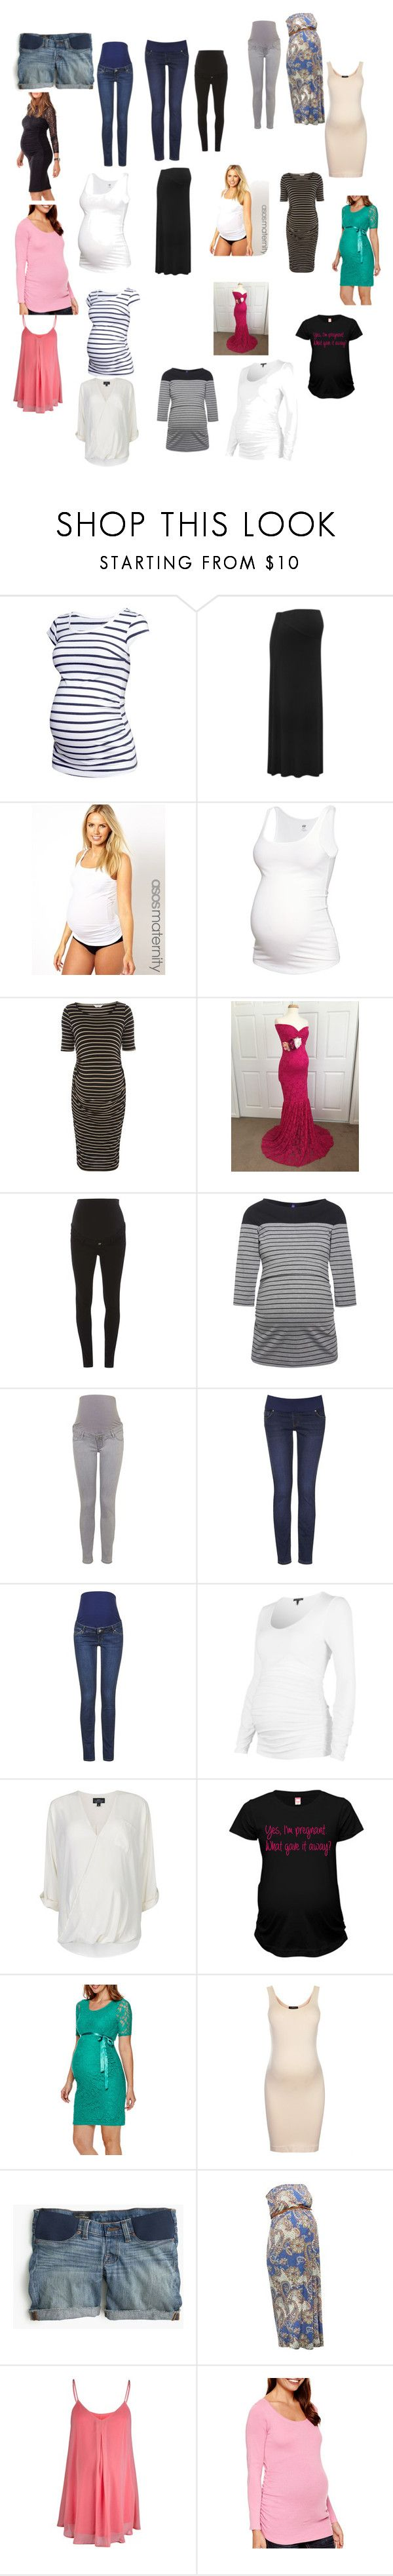 """Untitled #322"" by peigestyles ❤ liked on Polyvore featuring H&M, M&Co, Emma Jane, Dorothy Perkins, Topshop, J.Crew, Rock-a-Bye Rosie and Isabella Oliver"